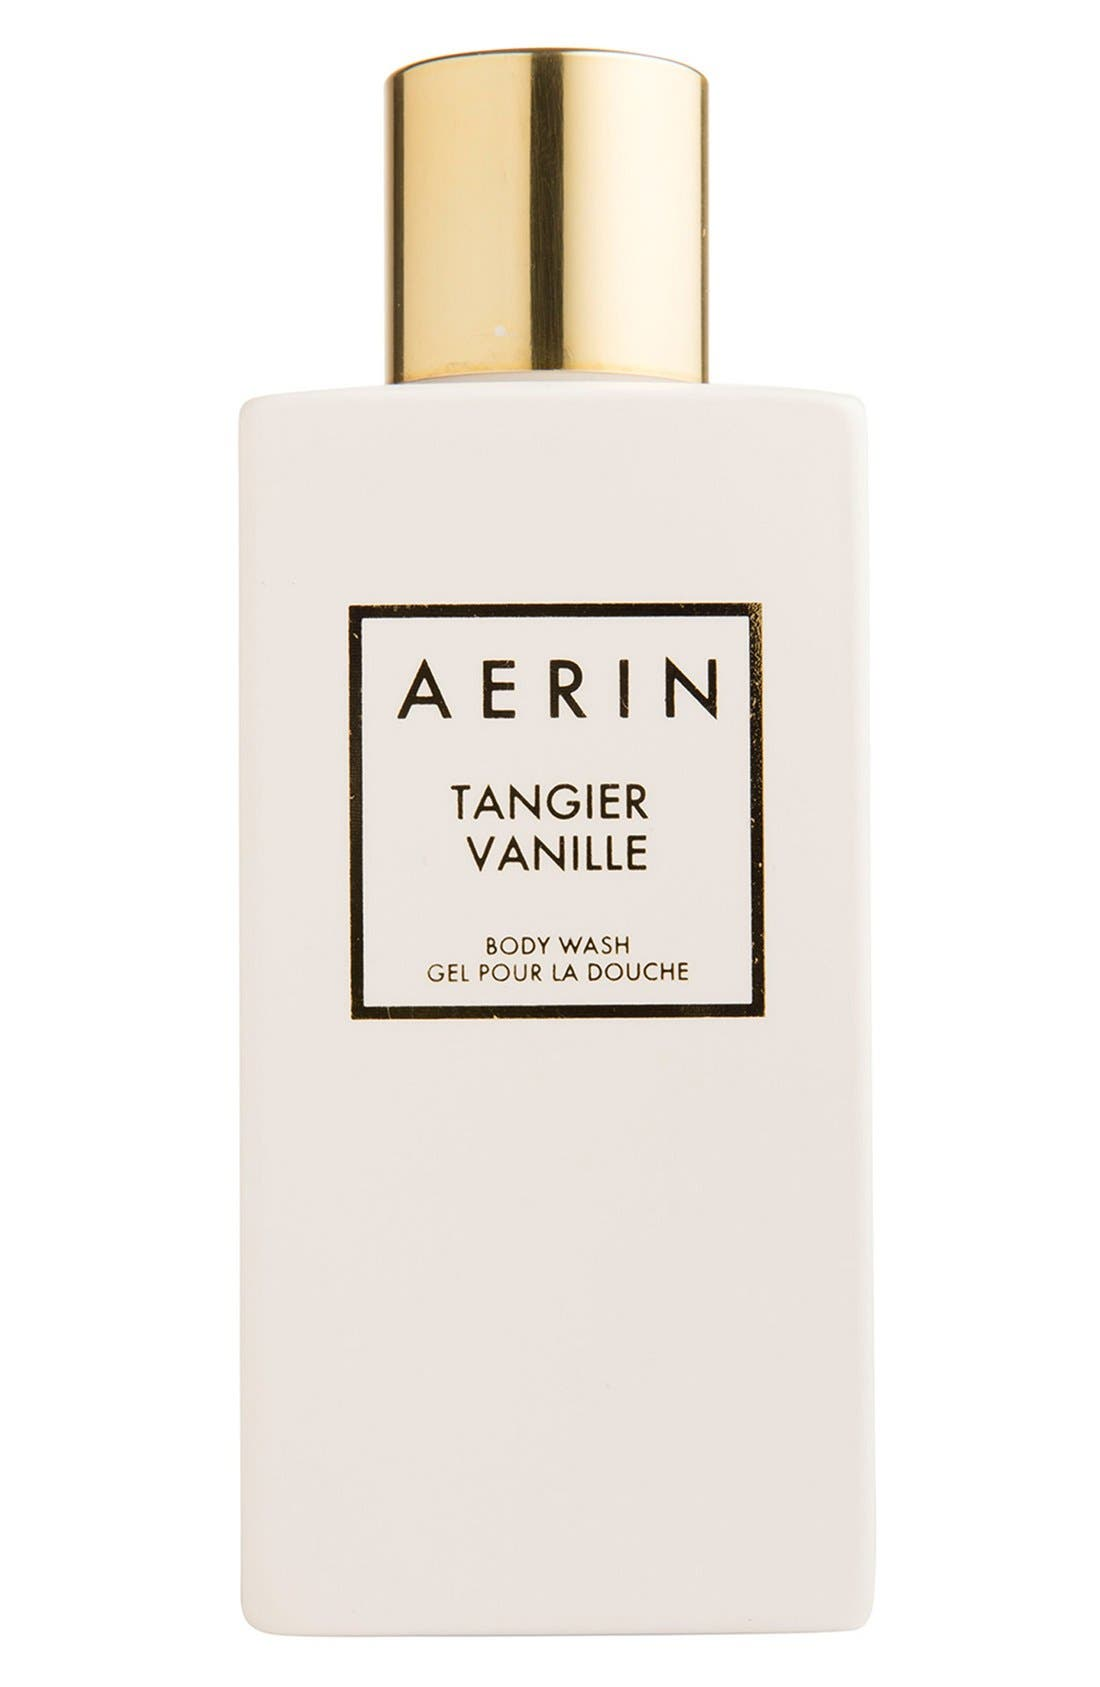 AERIN Beauty Tangier Vanille Body Wash